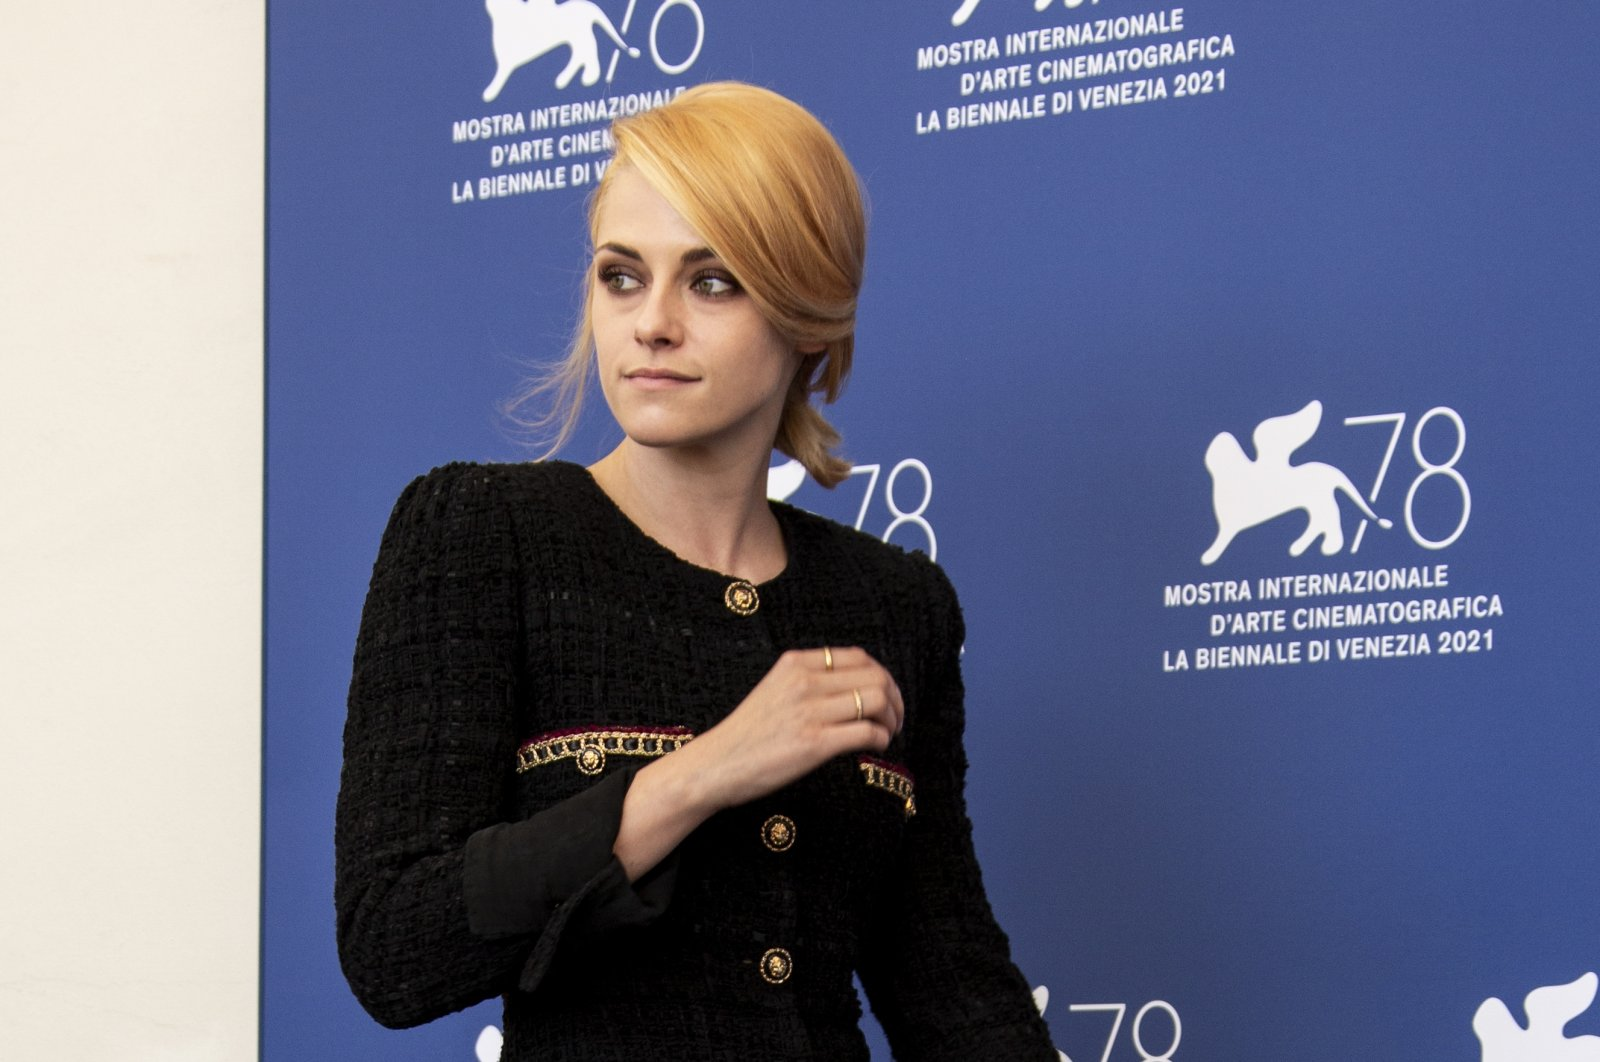 """Kristen Stewart poses for photographers at the photocall for the film """"Spencer"""" at the 78th Venice Film Festival in Venice, Italy, Sept. 3, 2021. (AP Photo)"""